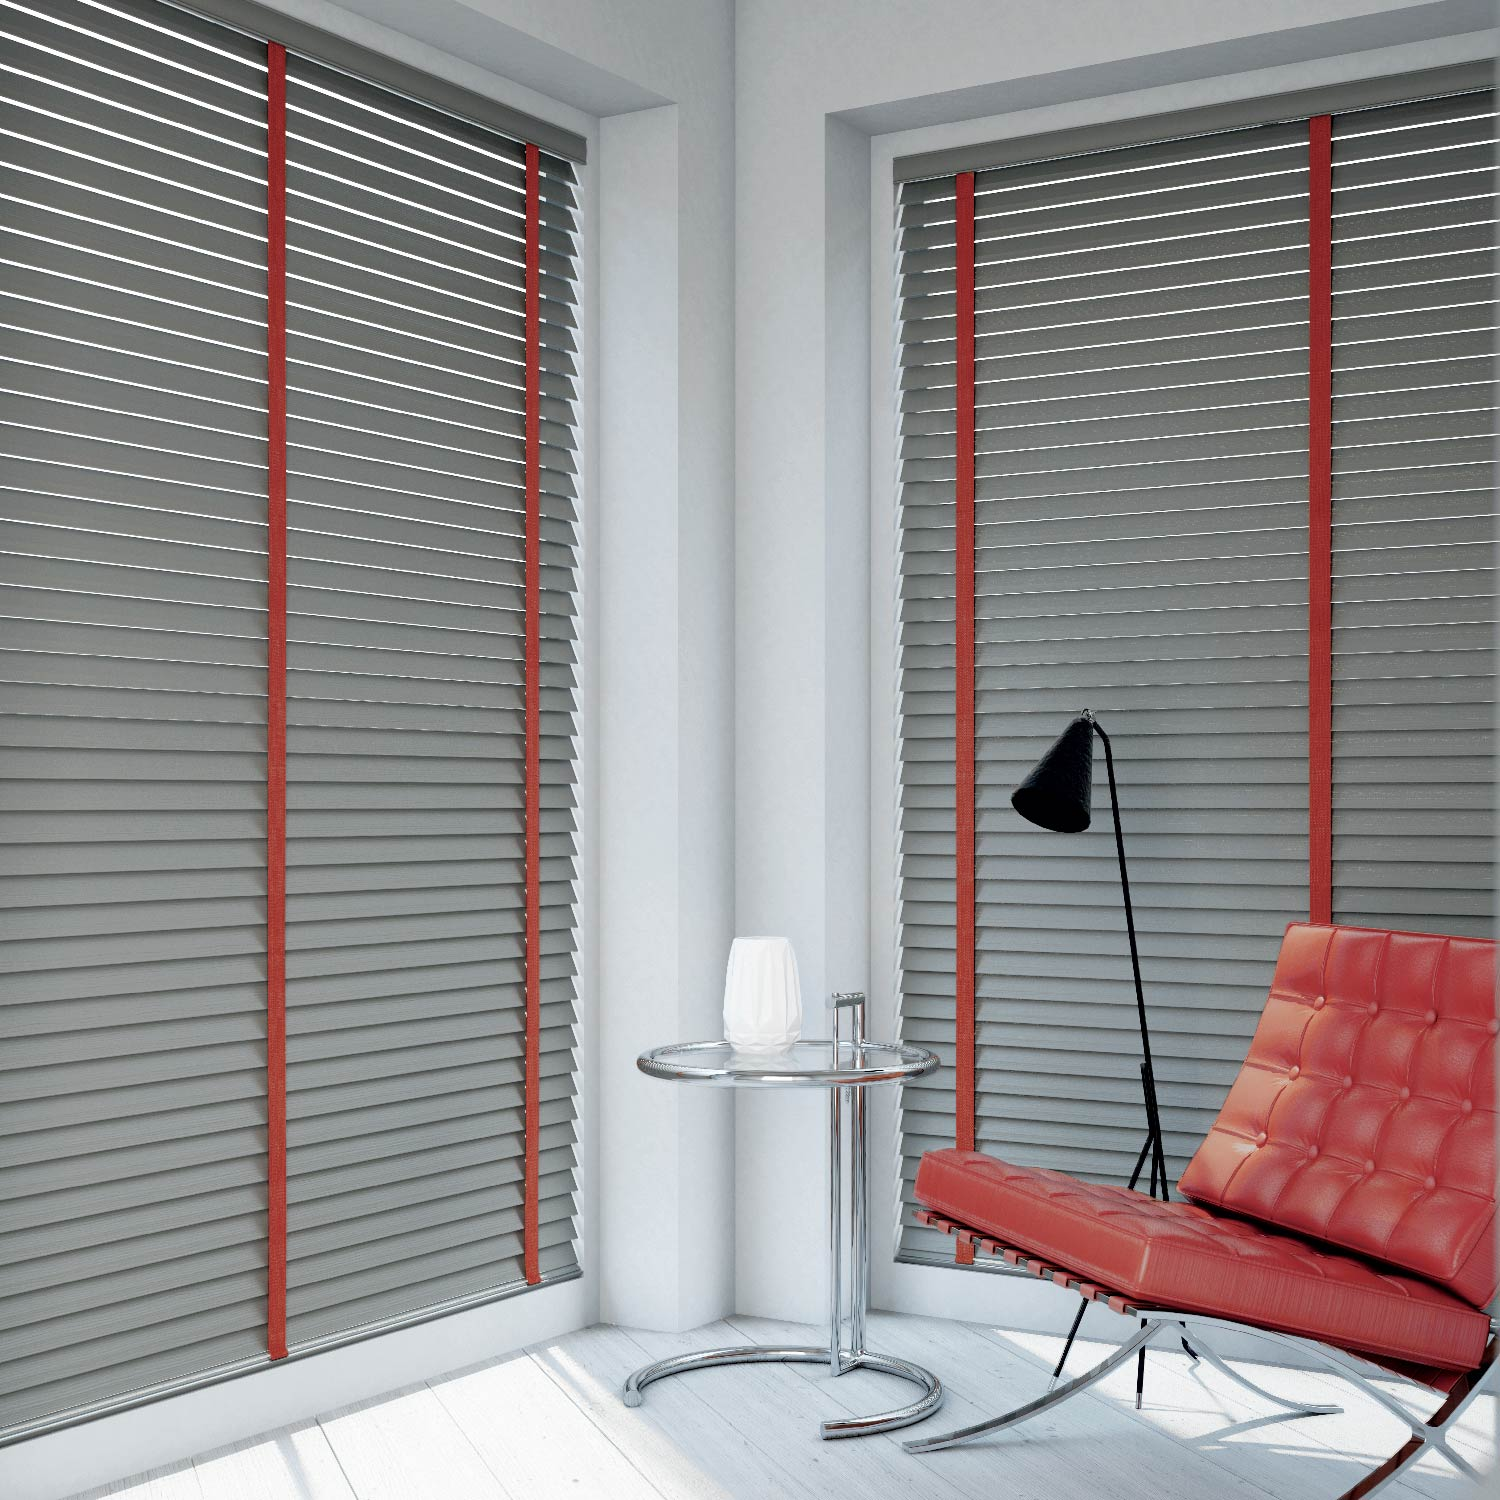 Wood Venetian - Venetian Blinds are very versatile, with a myriad of colours, finishes and slat widths in the market. Painted finishes enable a blind to be produced in any colour, while technological developments allow for unique slat finishes such as distressed, high gloss or veneer finish, allowing you to stamp your taste and personality on your home.